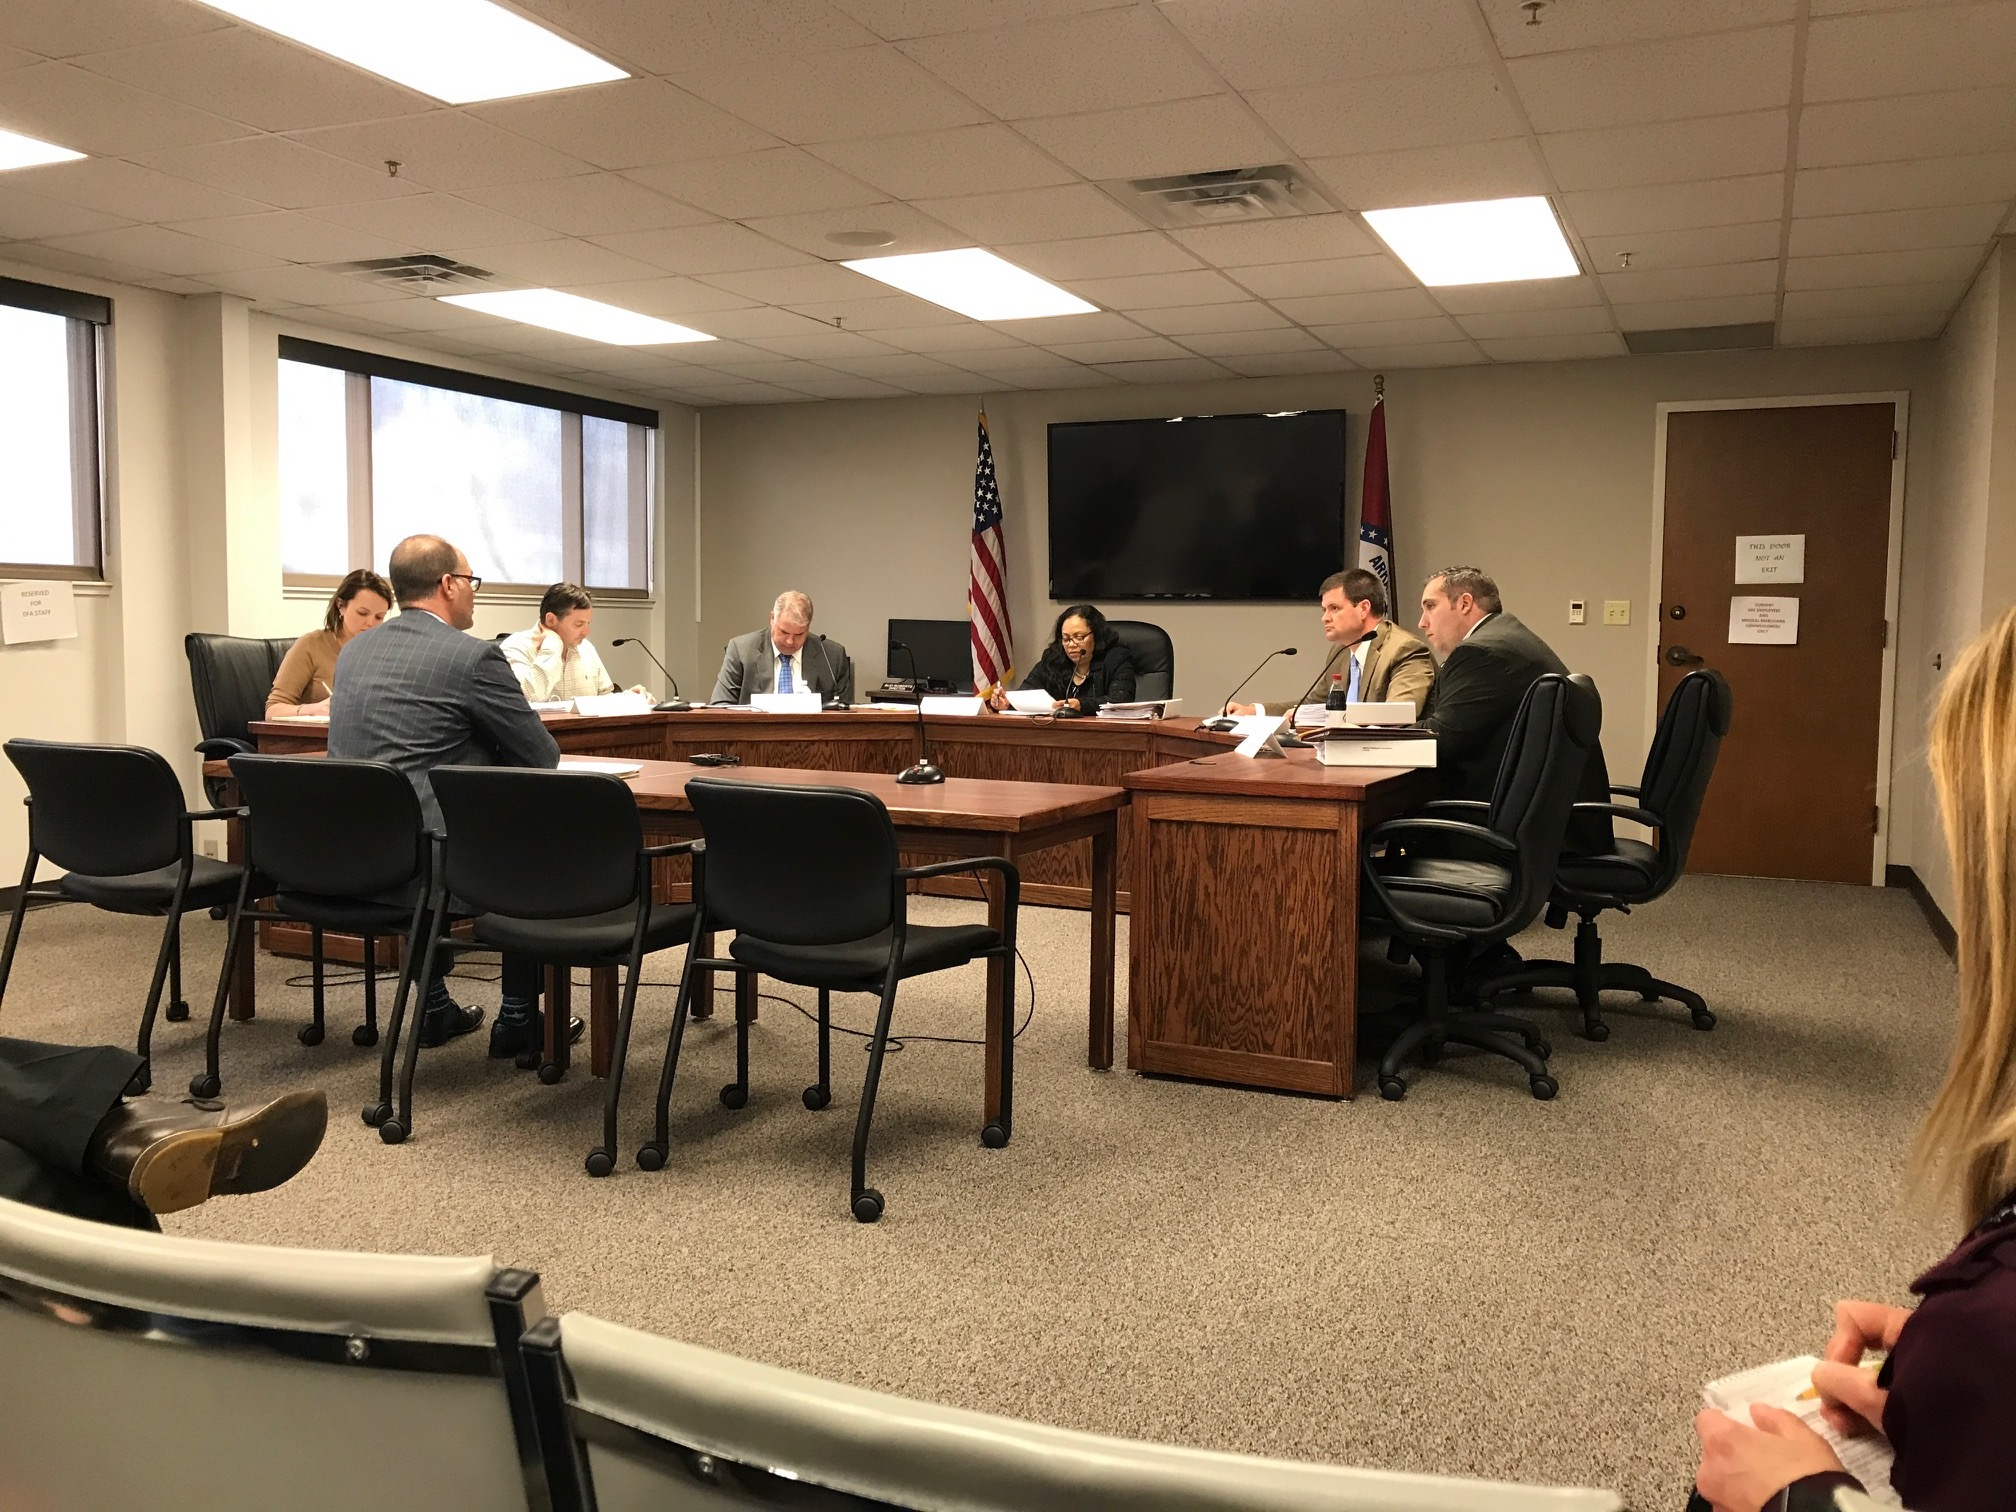 Updates from the April 5th Medical Marijuana Commission Meeting